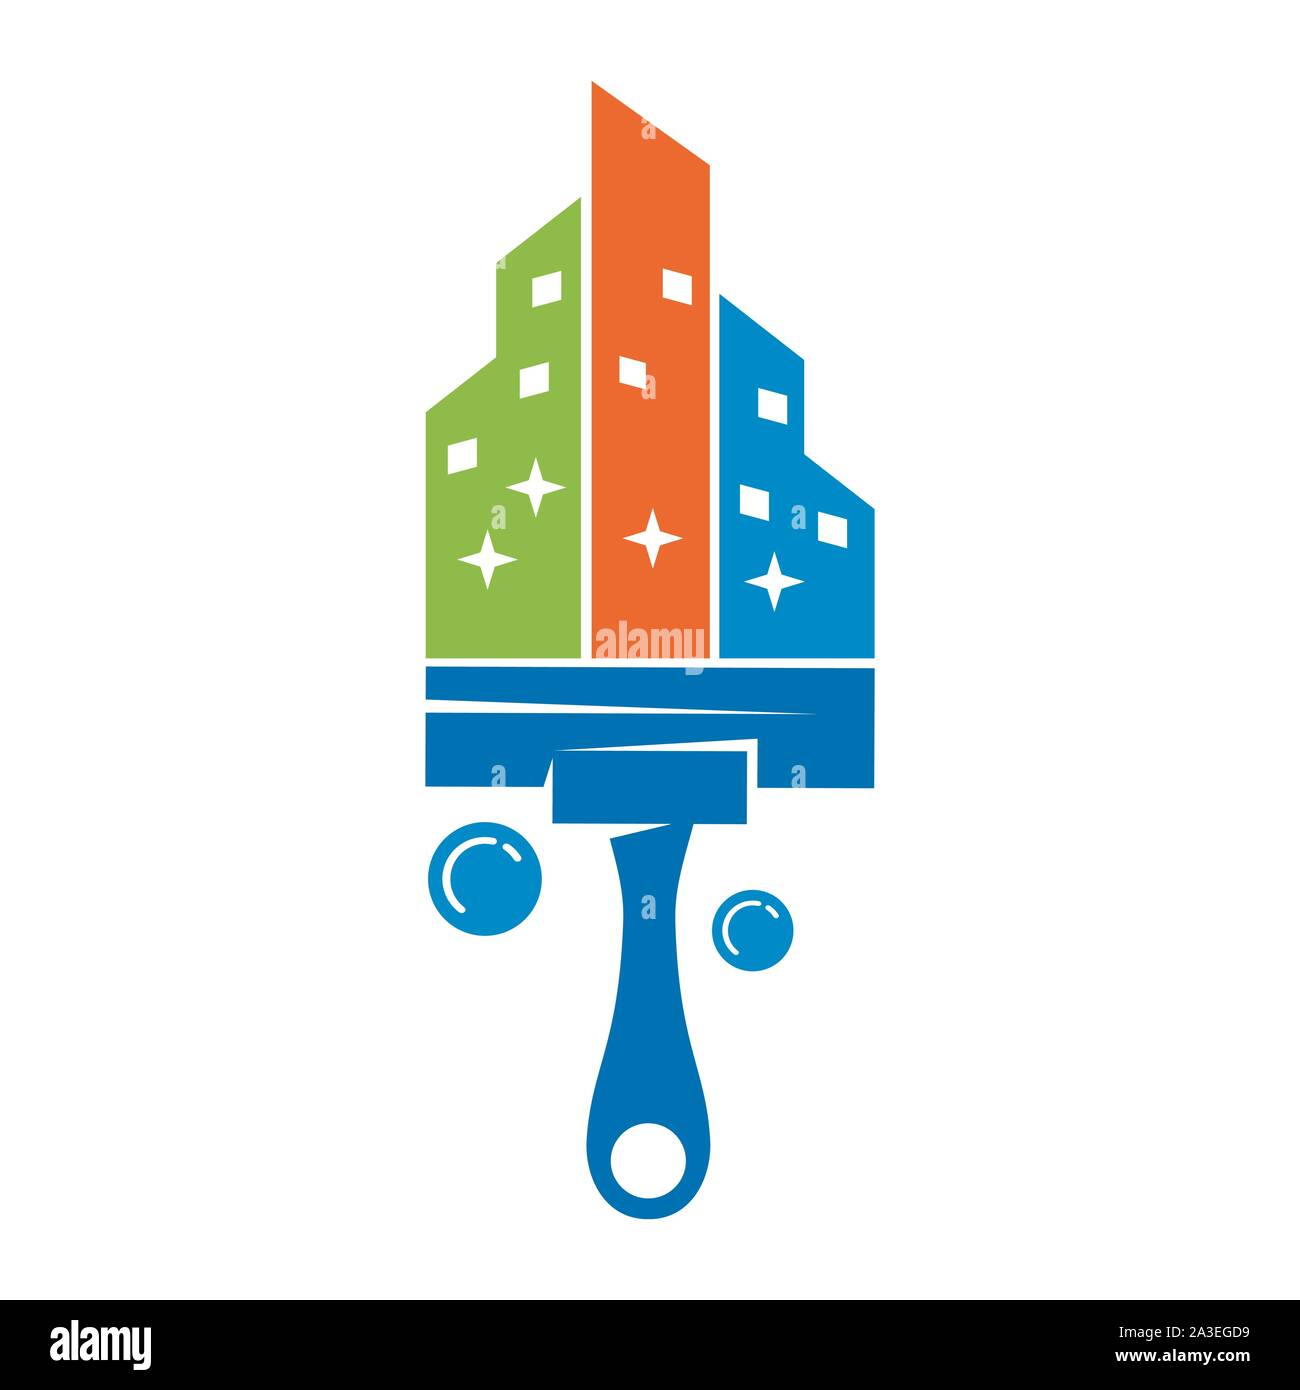 Cleaning Service Business Logo Design Eco Friendly Concept For Interior Home And Building Stock Vector Image Art Alamy